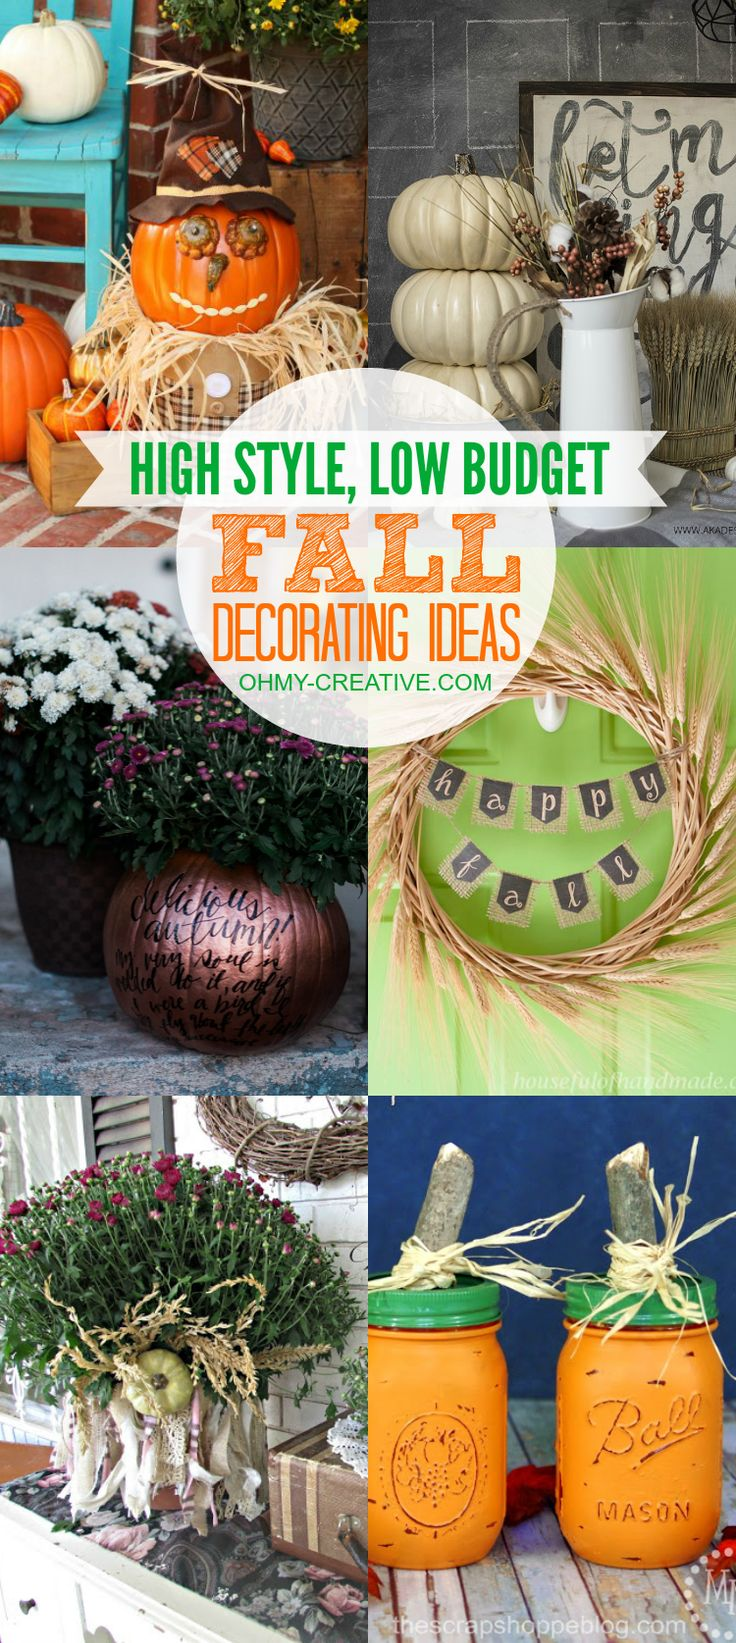 High Style Low Budget Fall Decorating Ideas